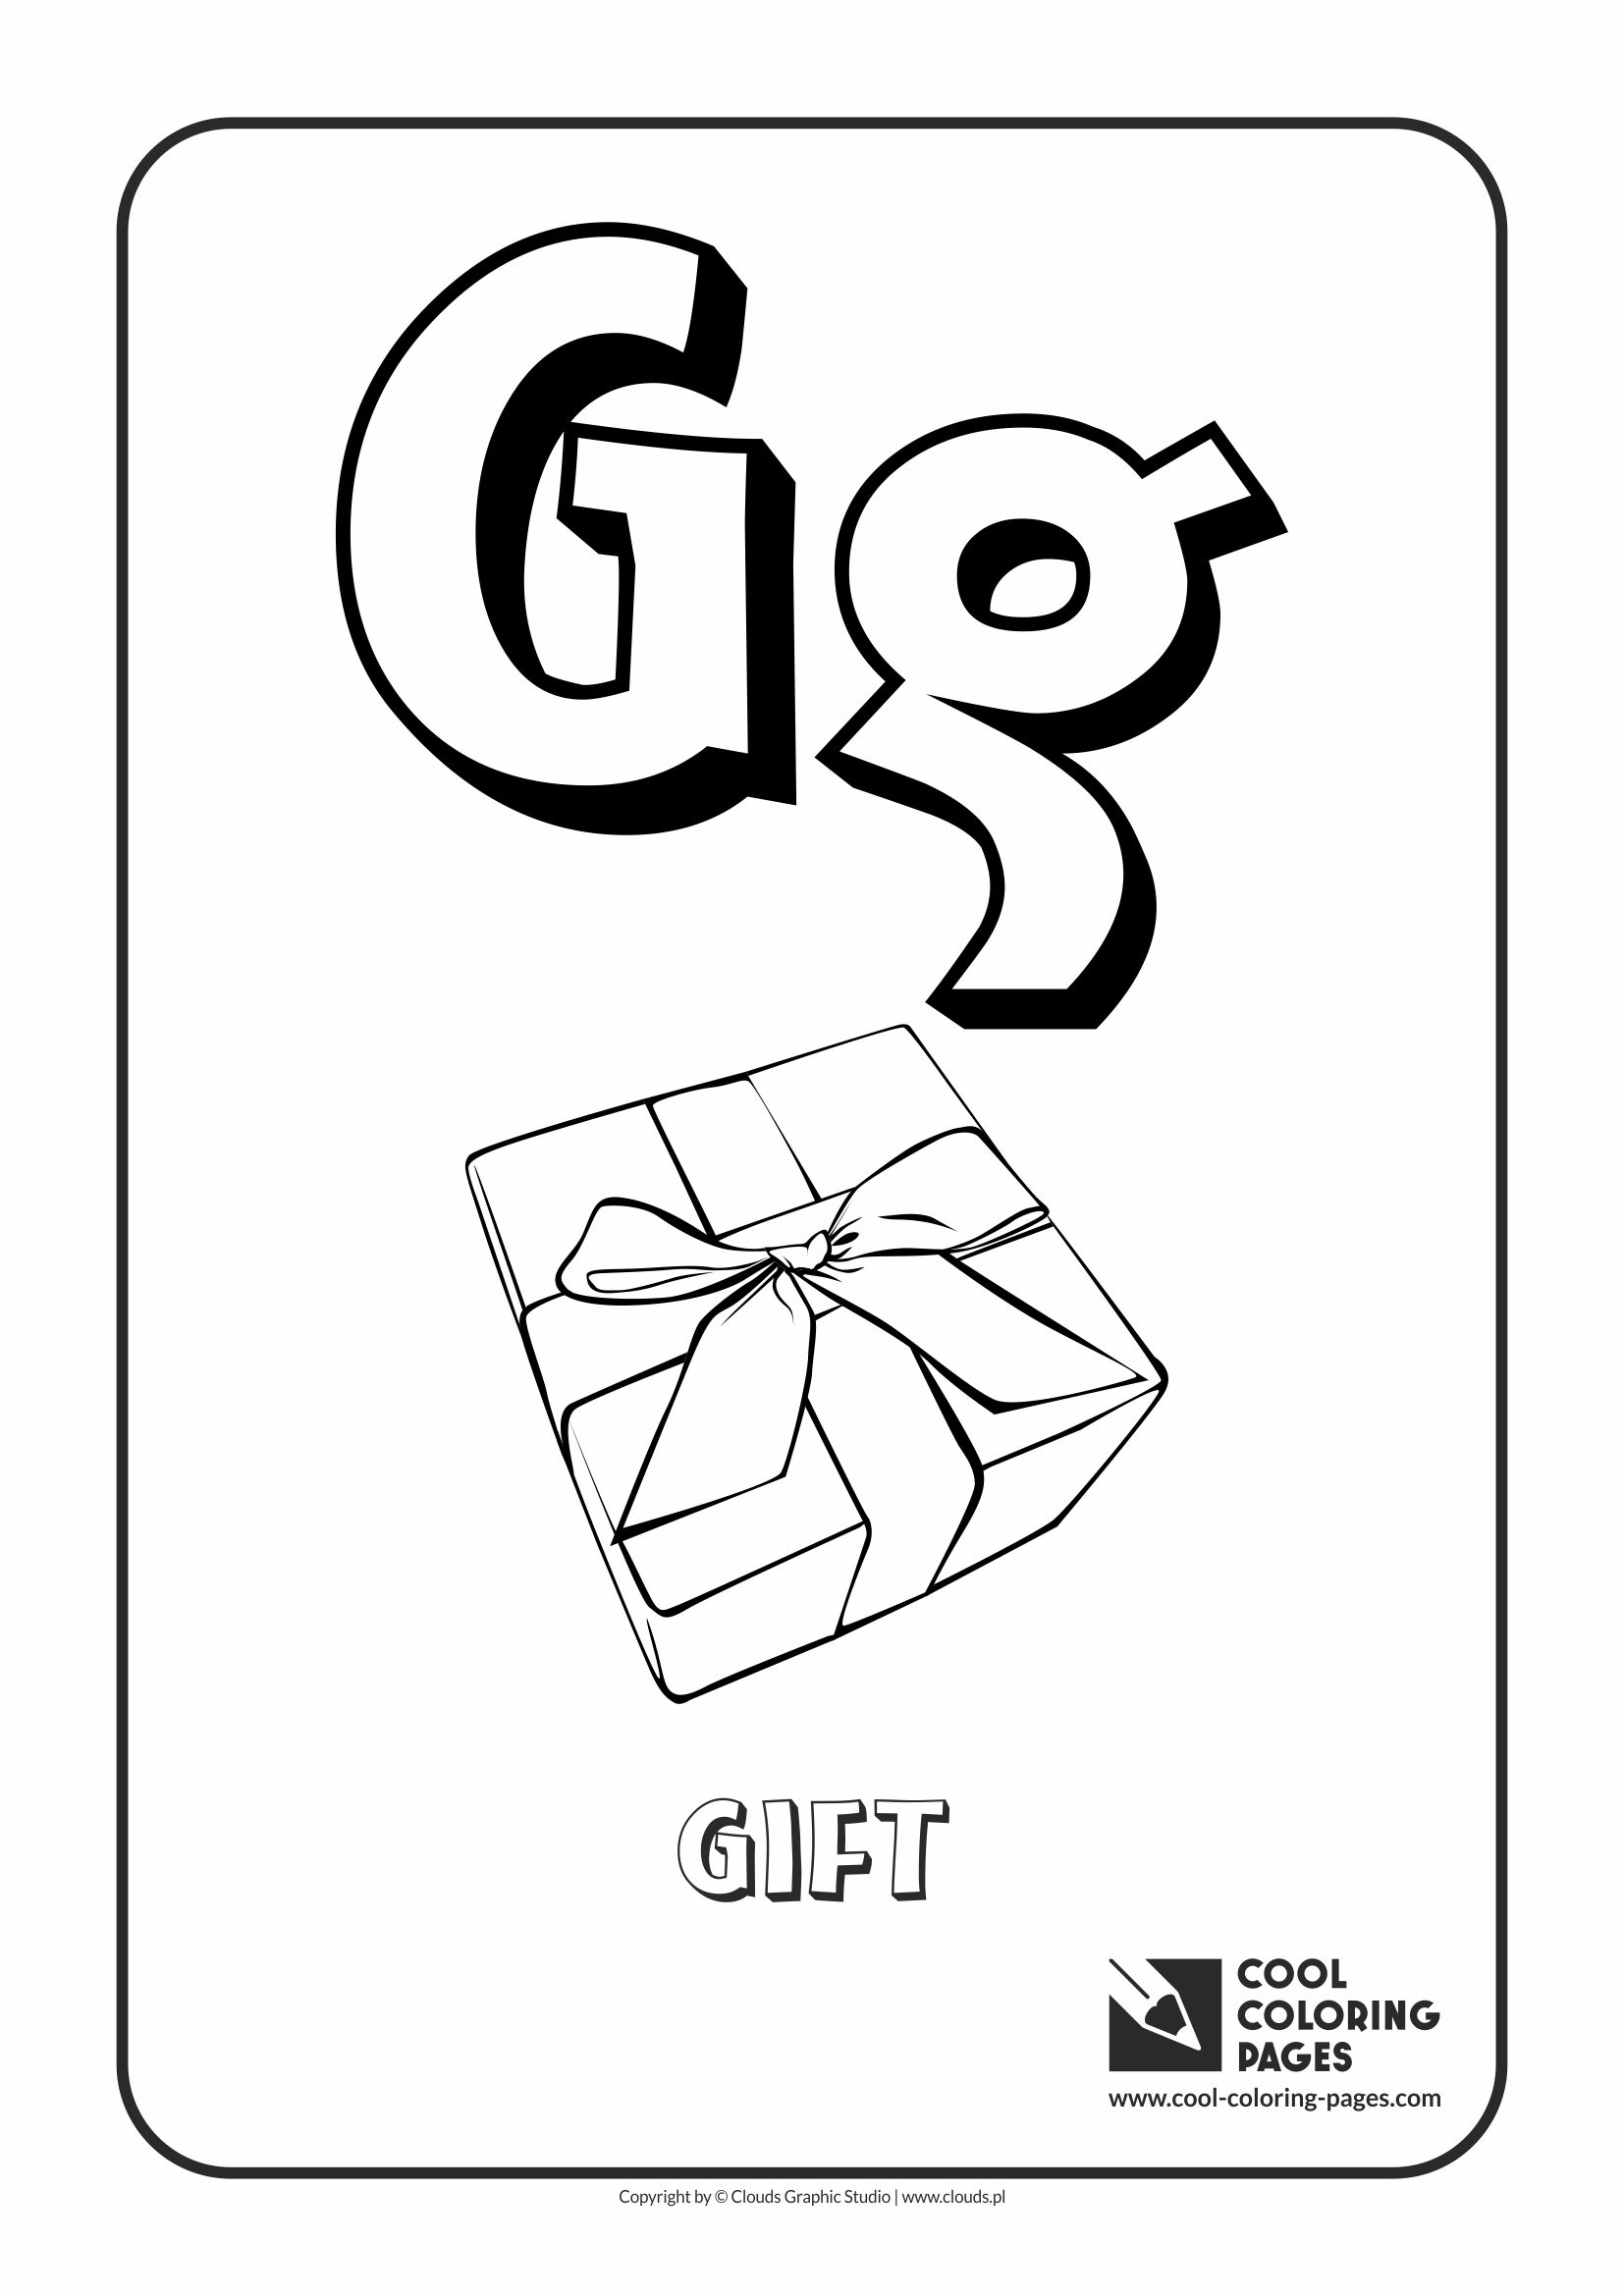 Cool Coloring Pages Letter G Coloring Alphabet Cool Coloring Pages Free Educational Coloring Pages And Activities For Kids